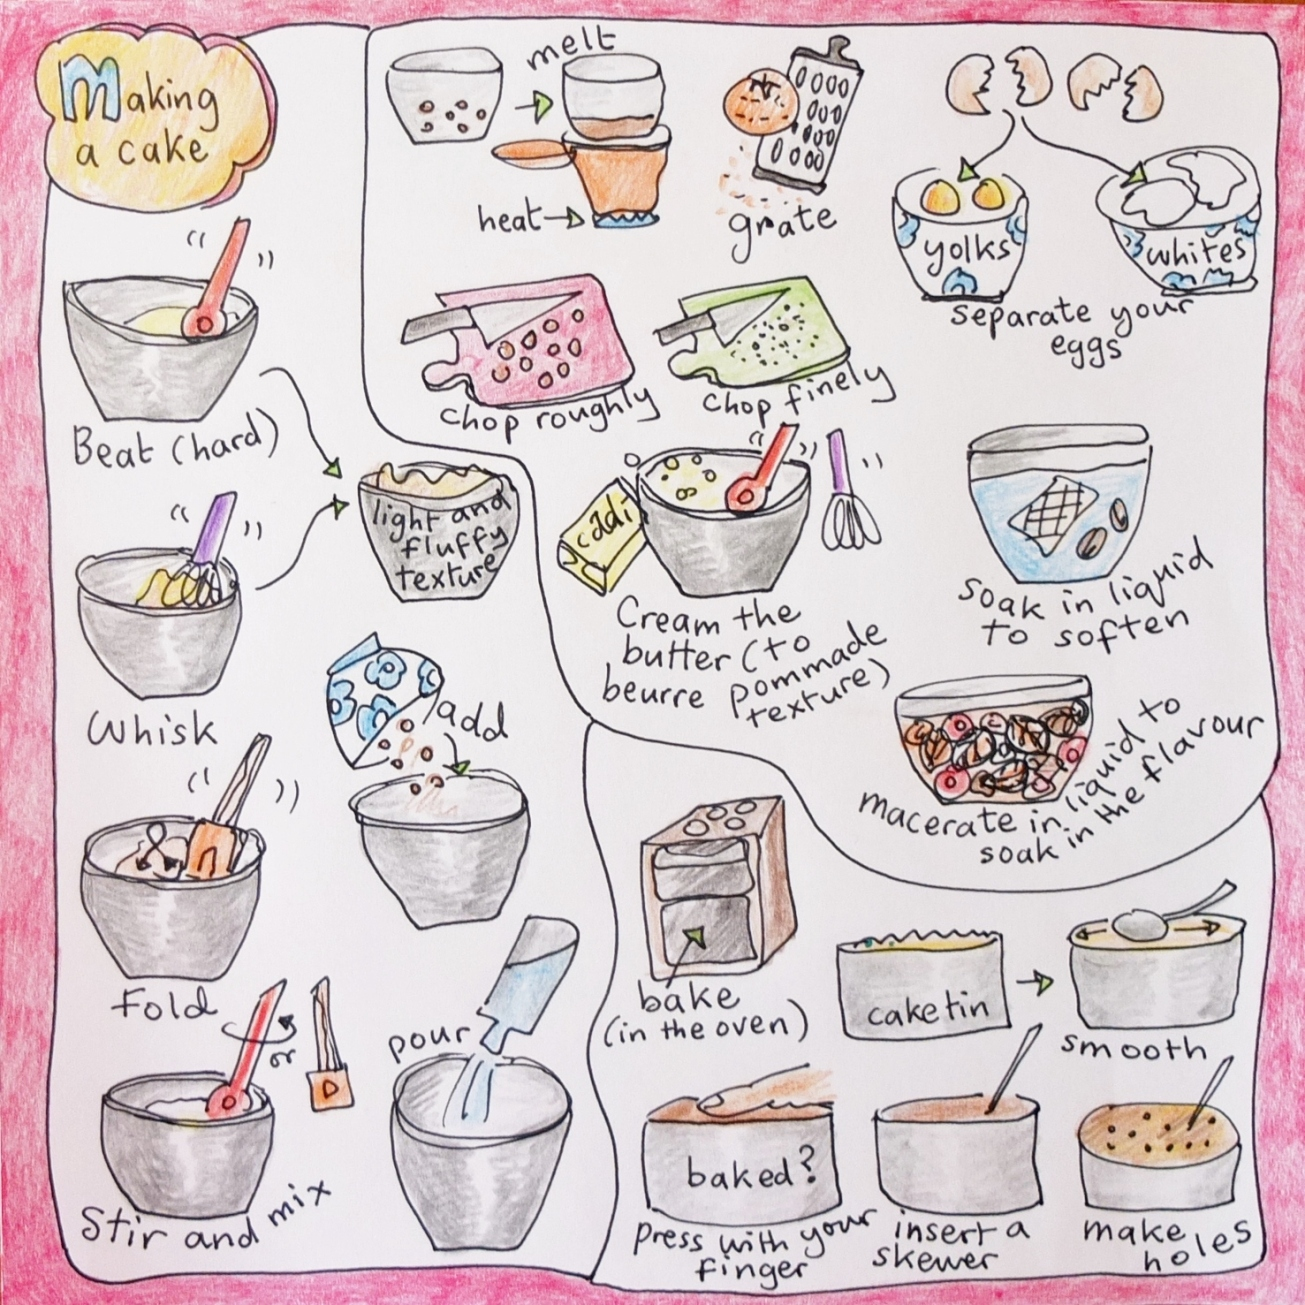 Making a cake - picture dictionary part 4